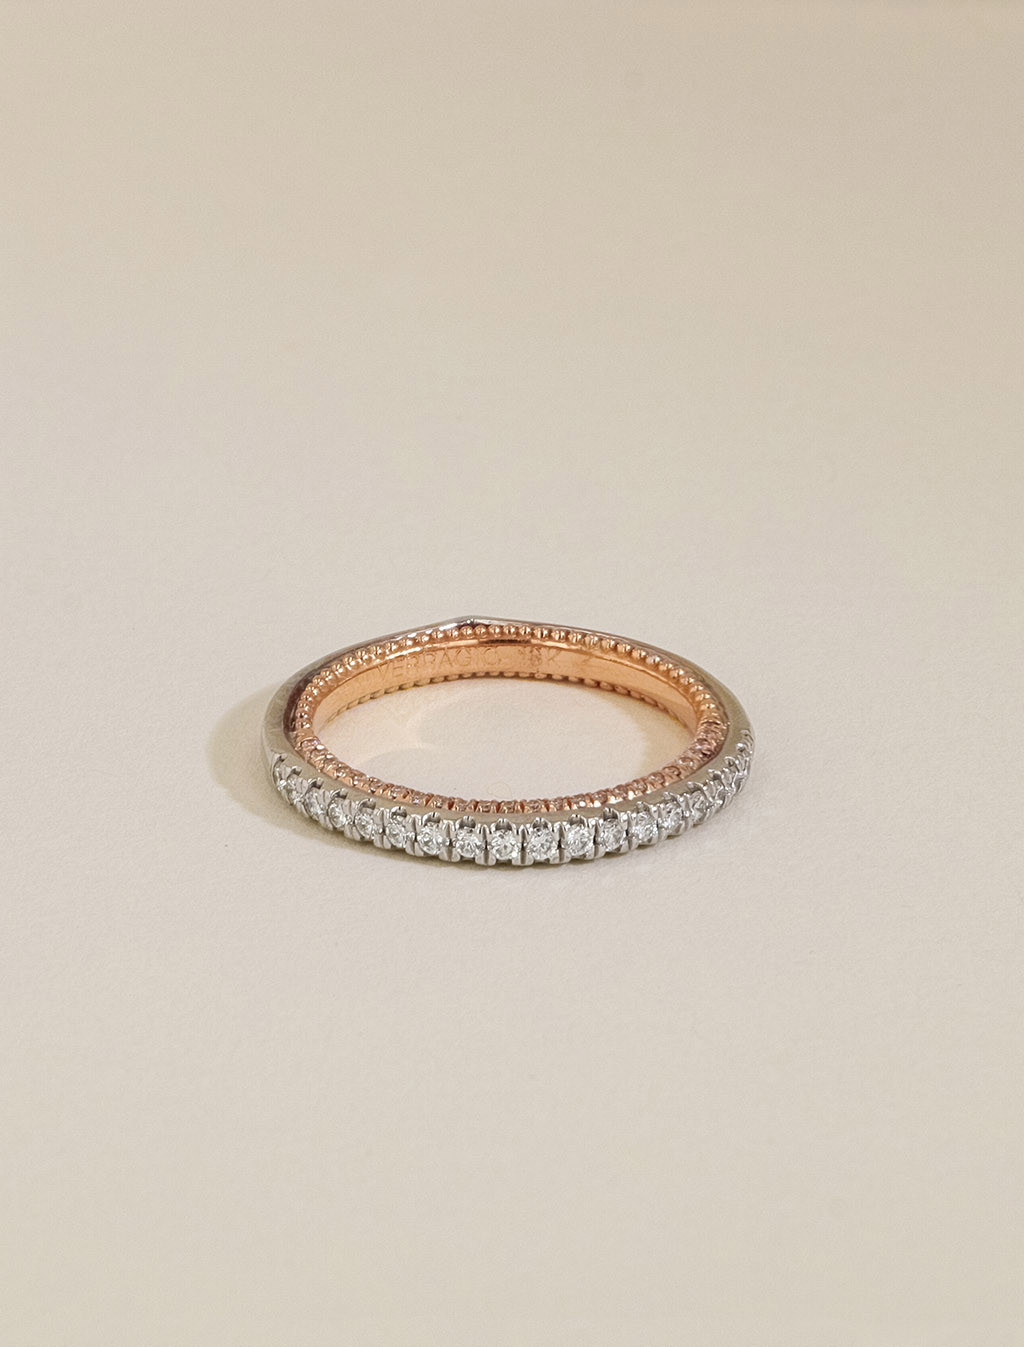 Verragio Couture Diamond Wedding Band in White and Rose Gold